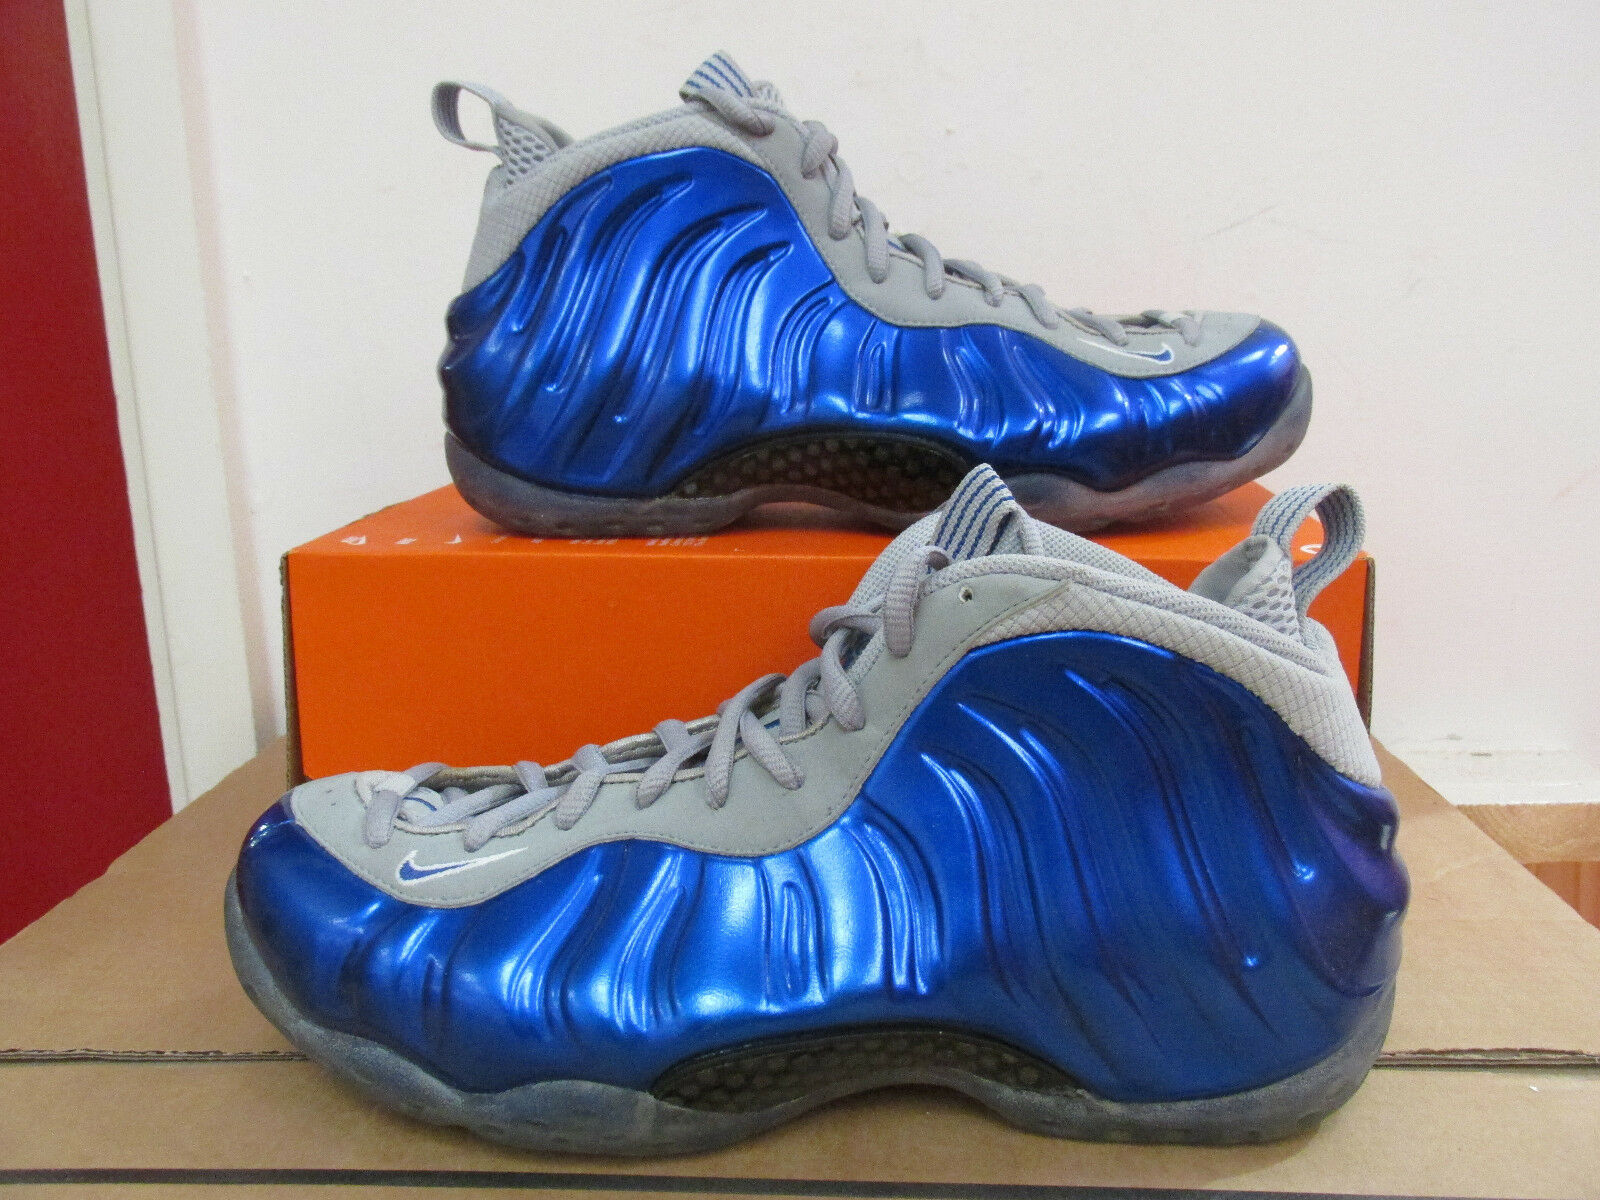 Nike air foamposite one mens basketball basketball basketball trainers 314996 401 Turnschuhe CLEARANCE 1e0913